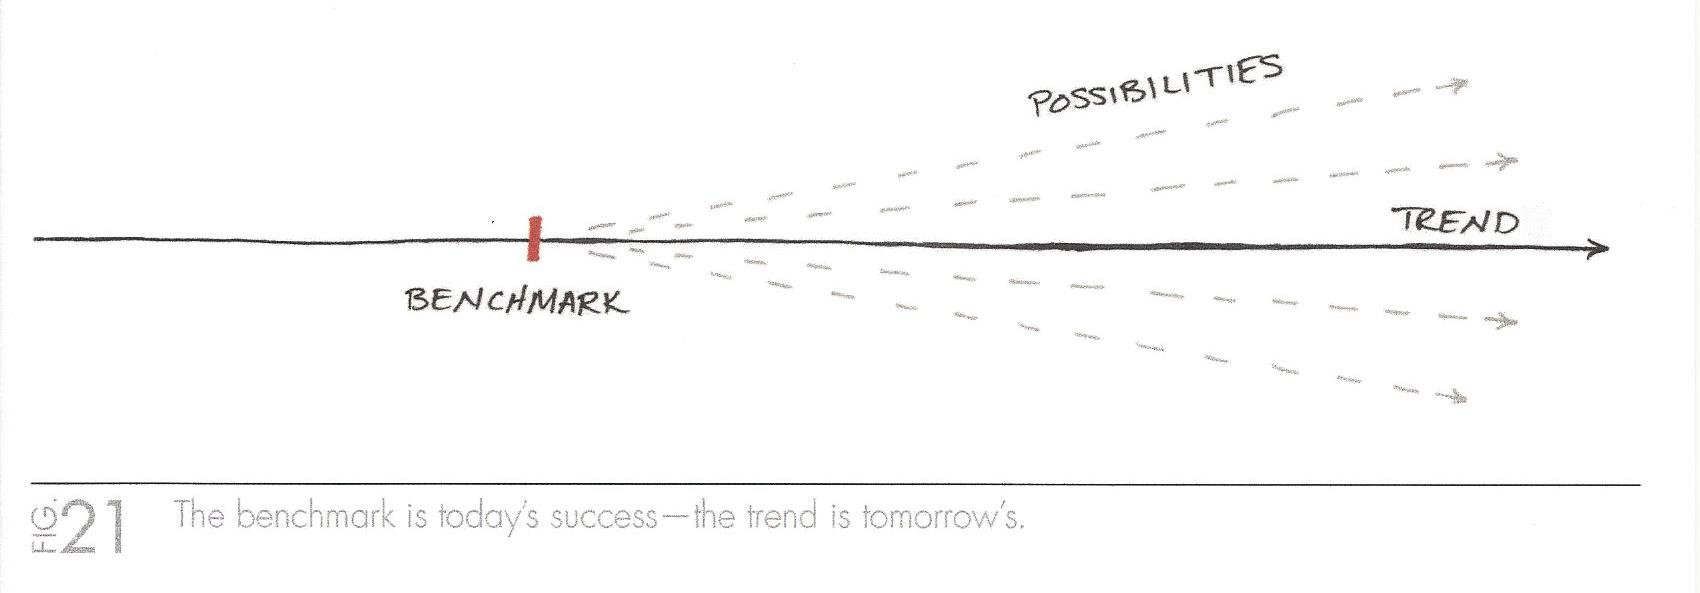 One Thing - The Benchmark is Today's Success - Trend is Tomorro.jpg